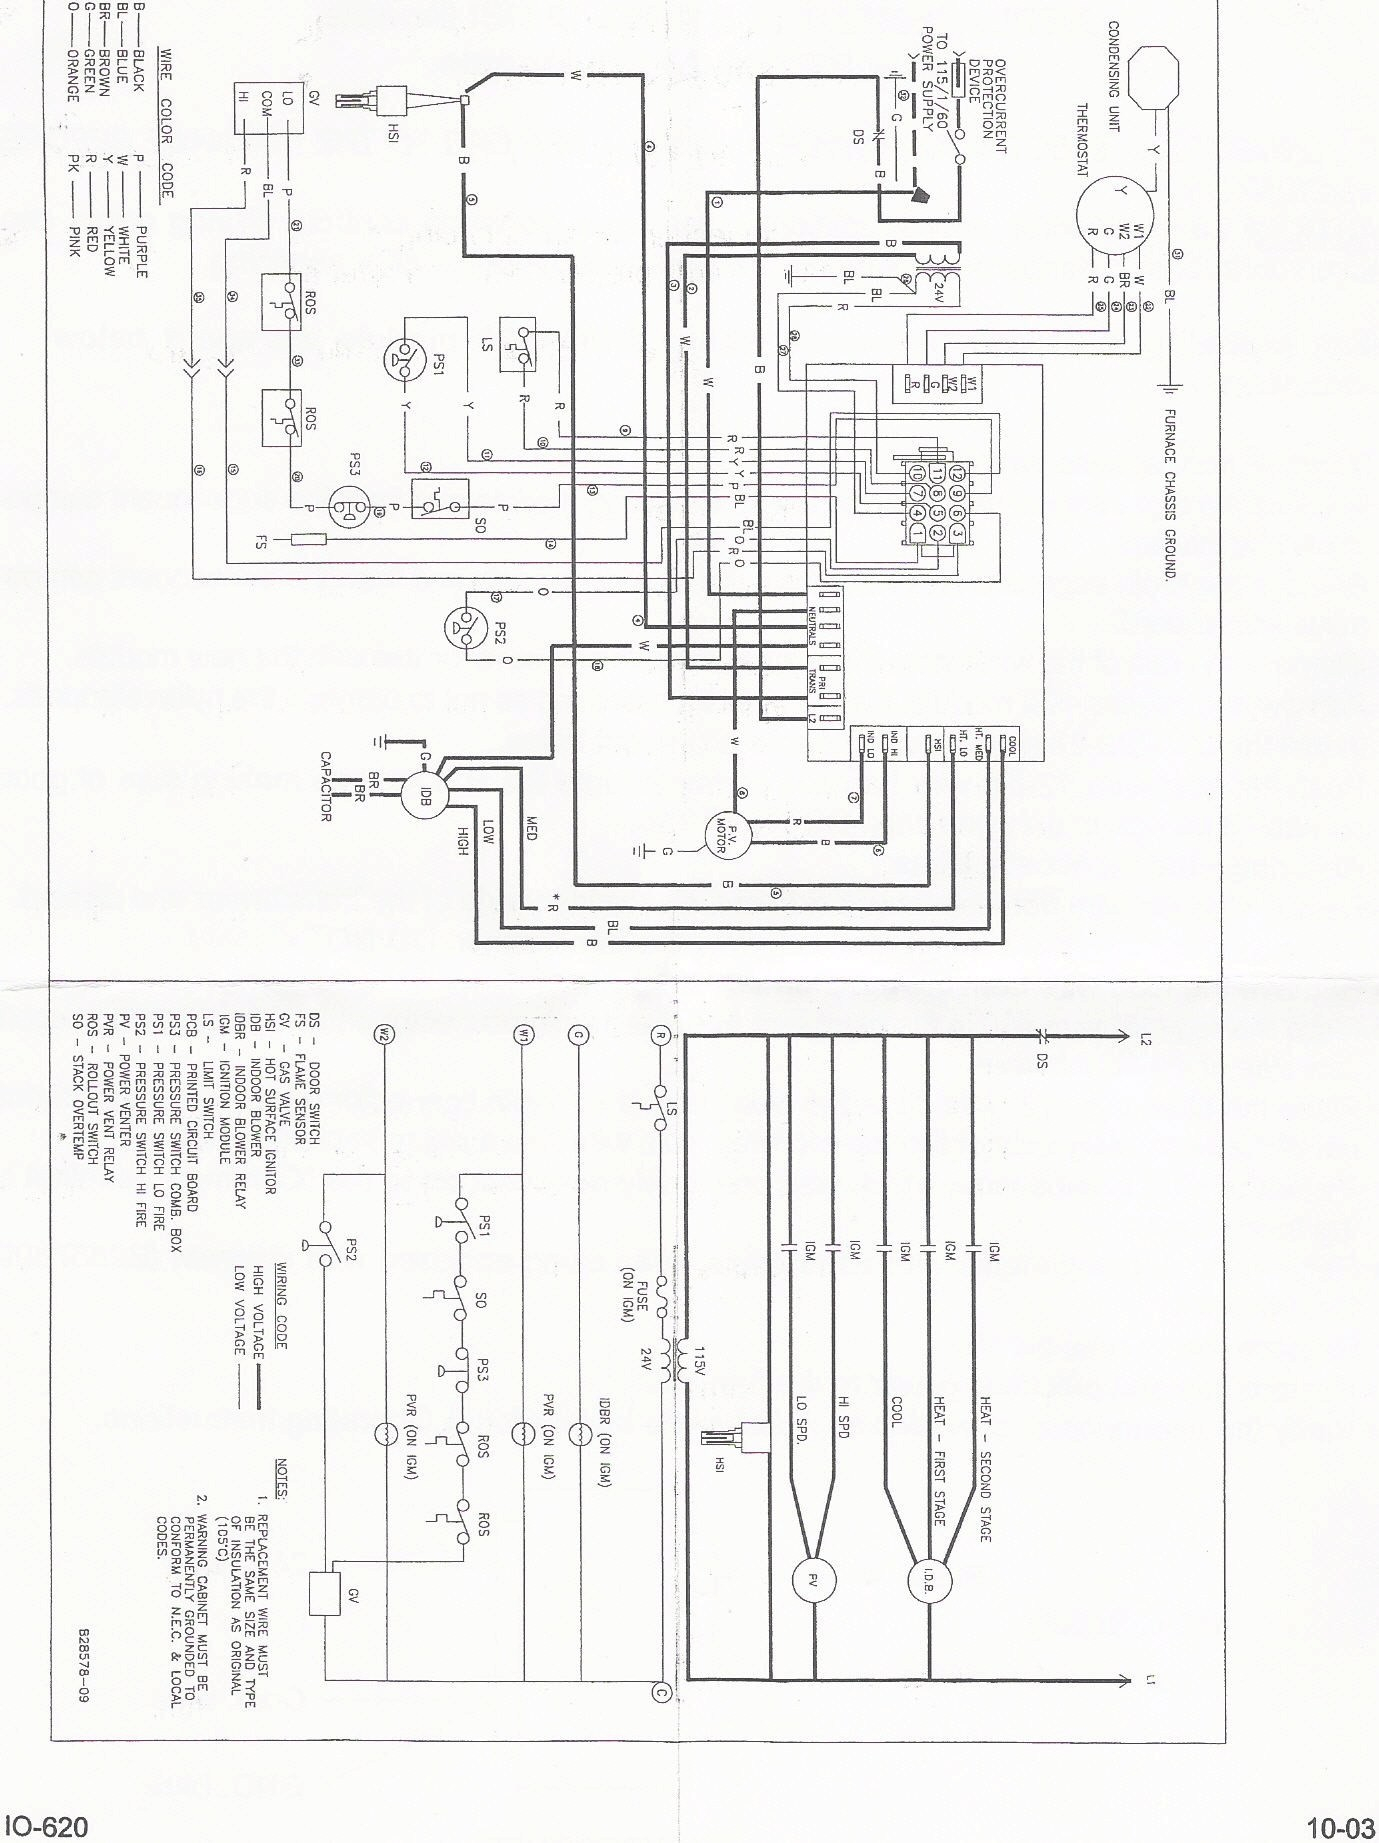 payne wiring diagram payne furnace fan wiring diagram